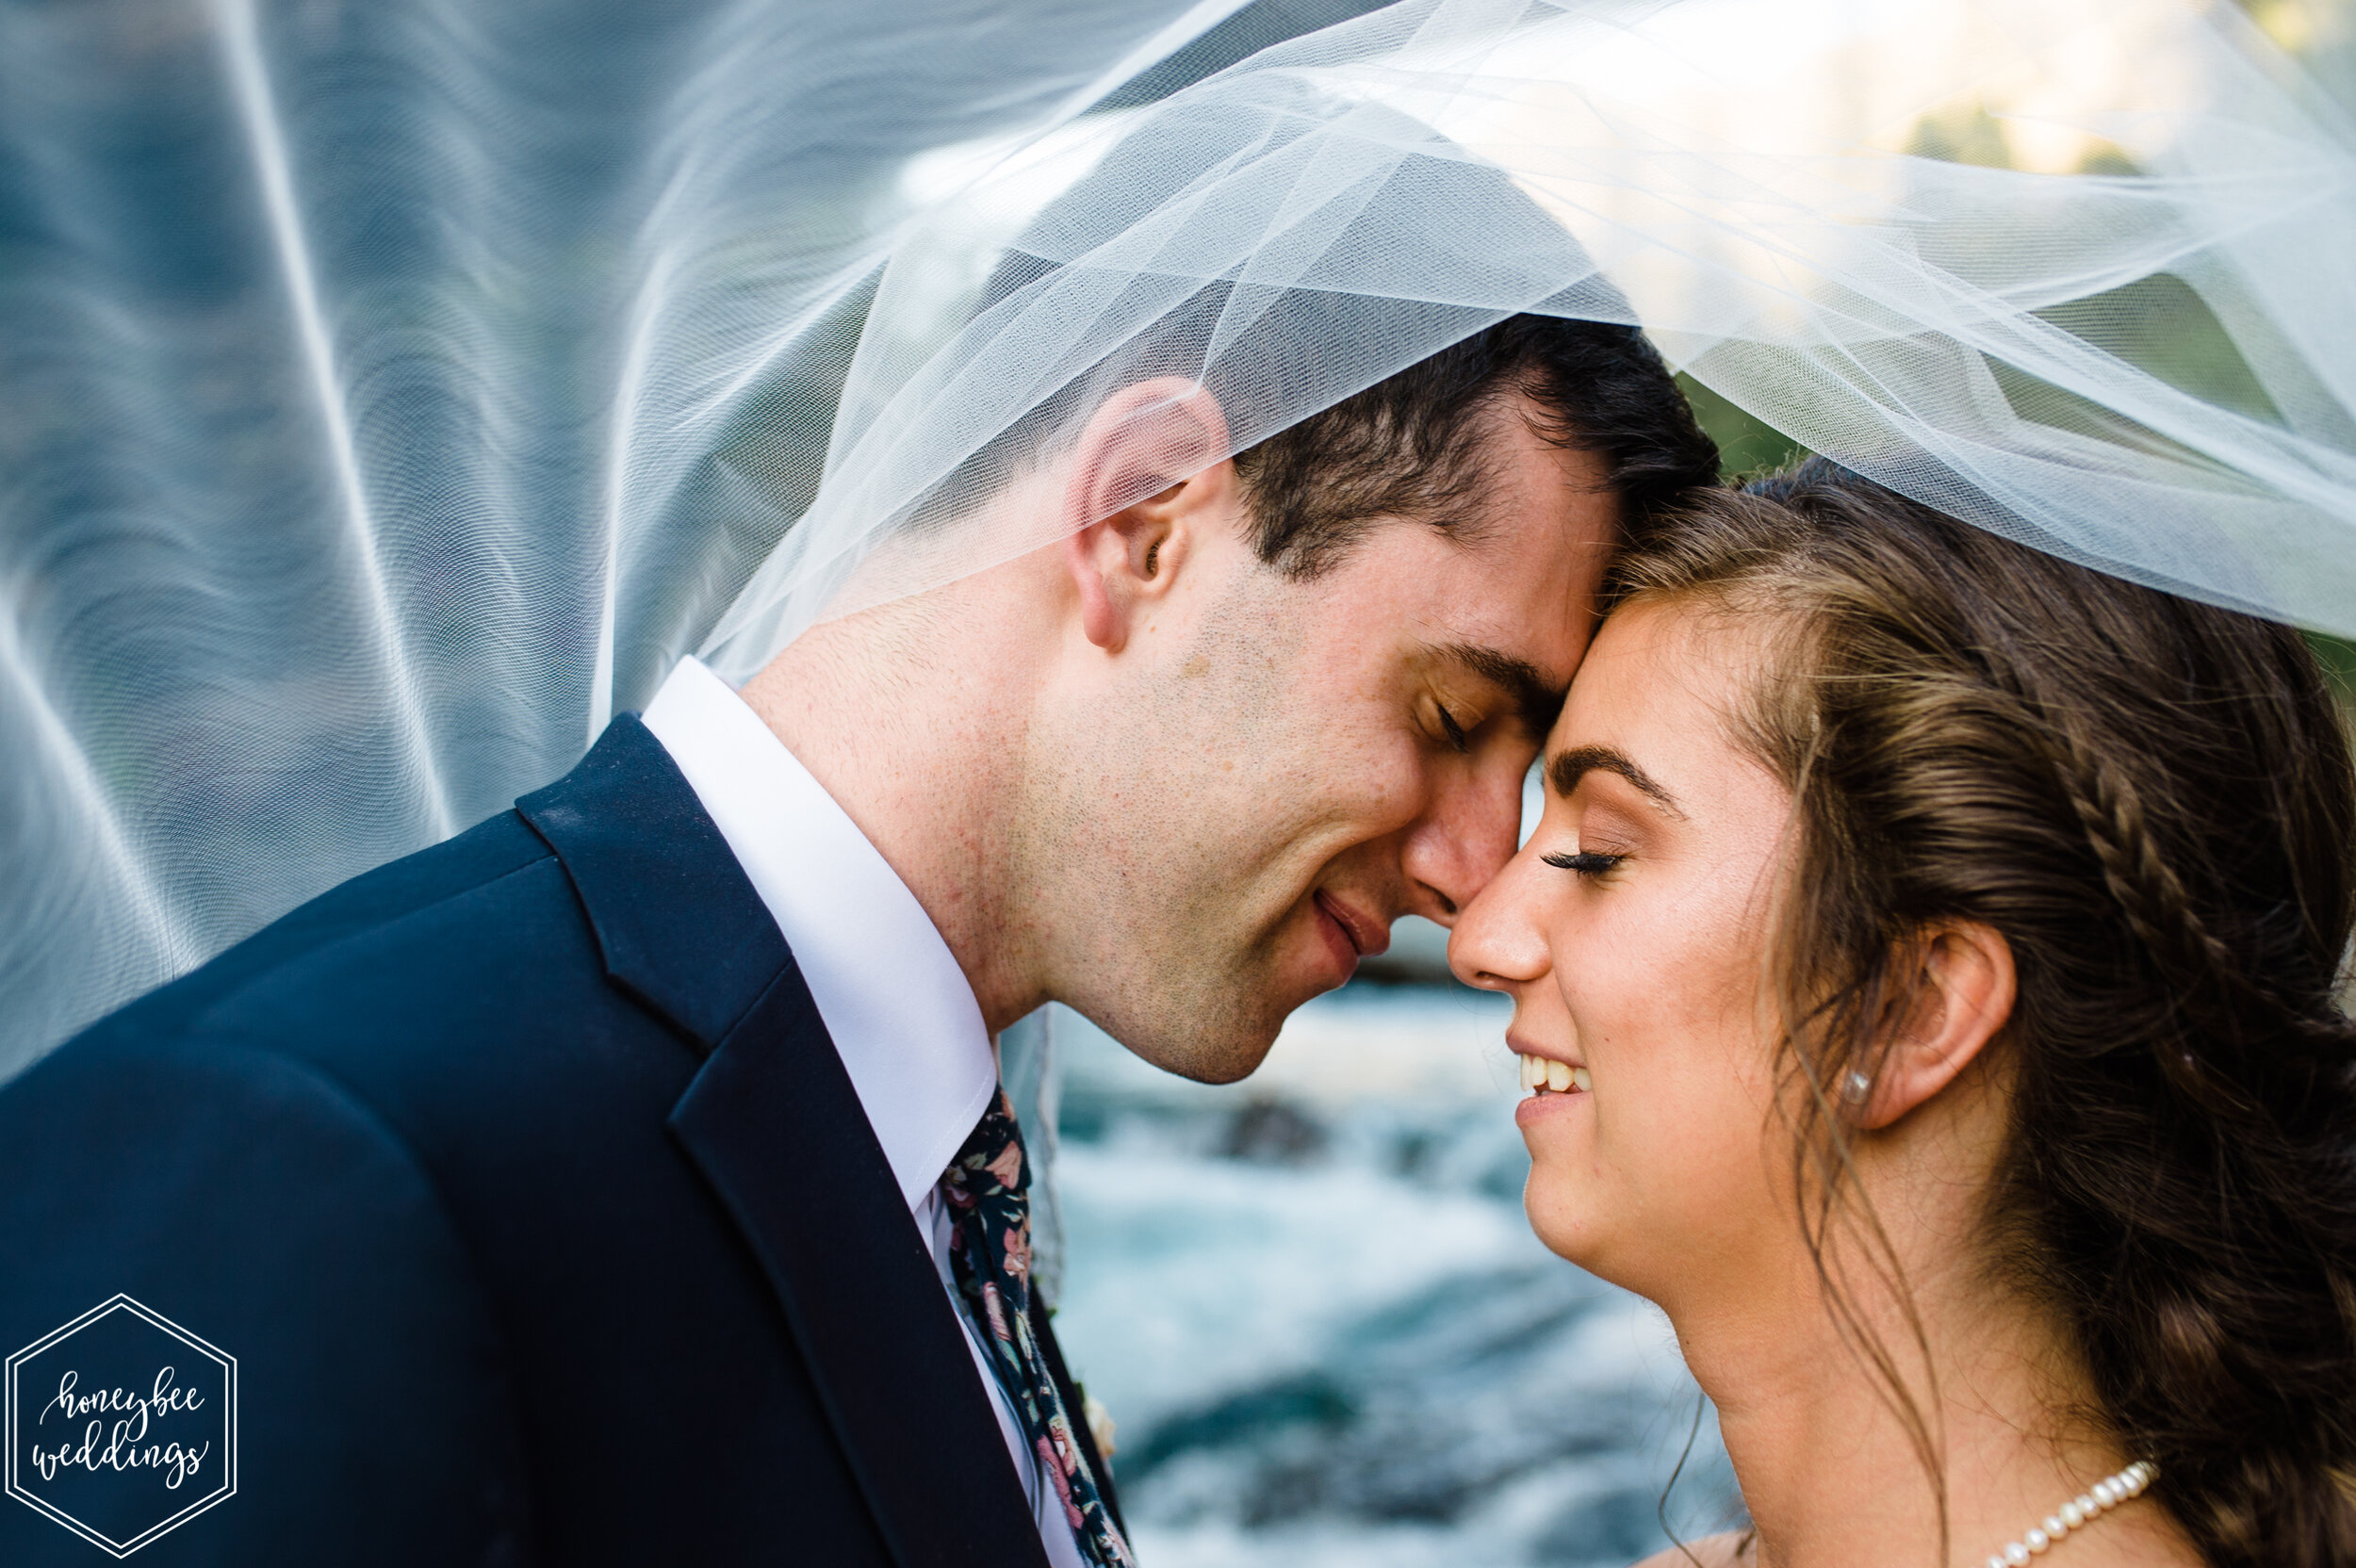 149Glacier National Park Wedding_Glacier Outdoor Center_Honeybee Weddings_Anna & Seth_July 21, 2019-2473.jpg